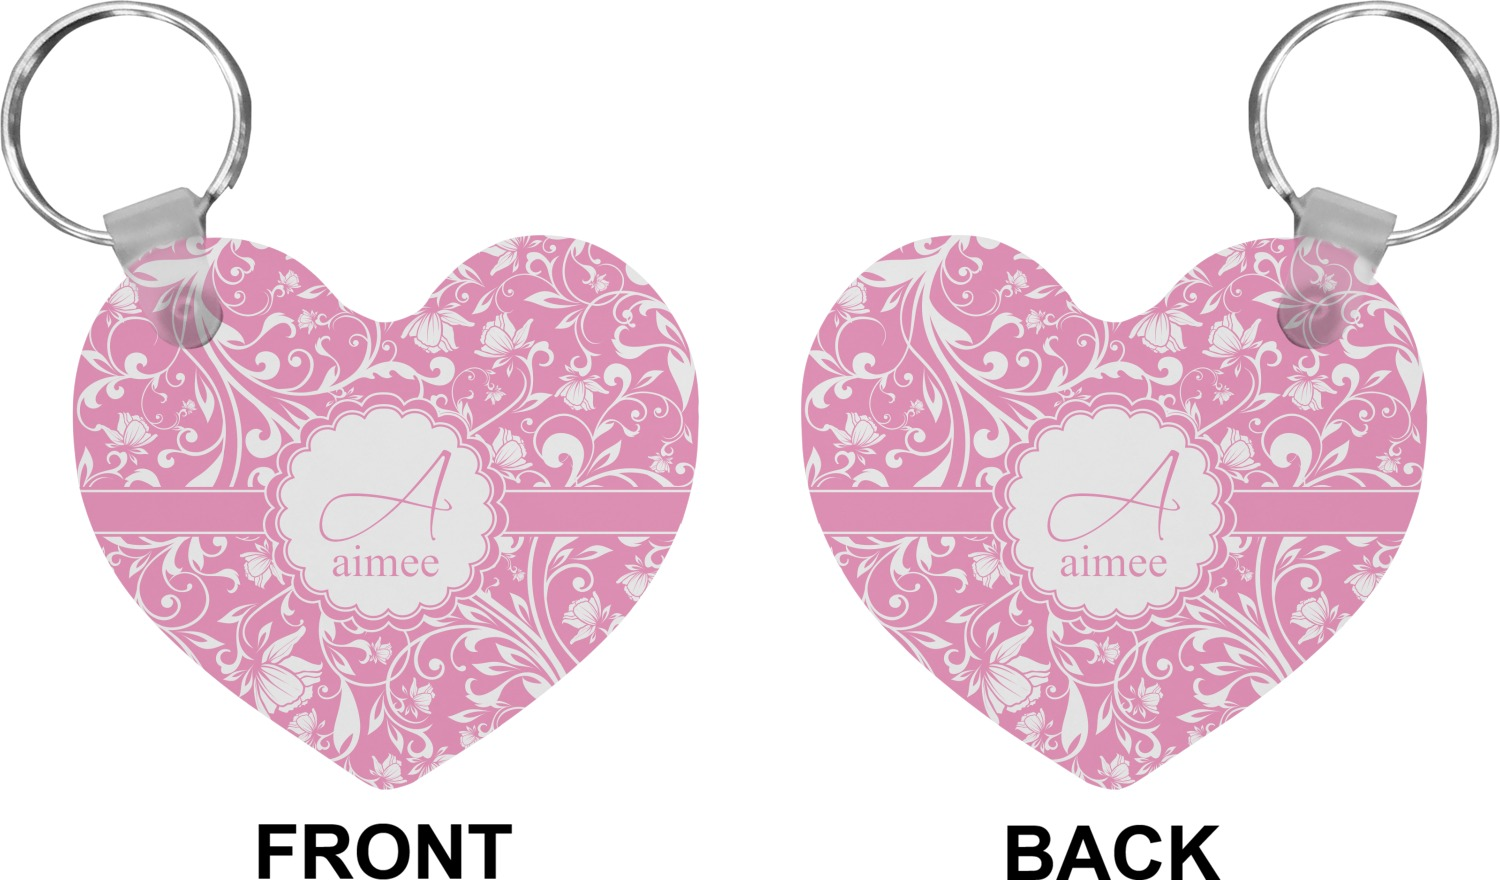 Floral Vine Heart Keychain Personalized You Customize It